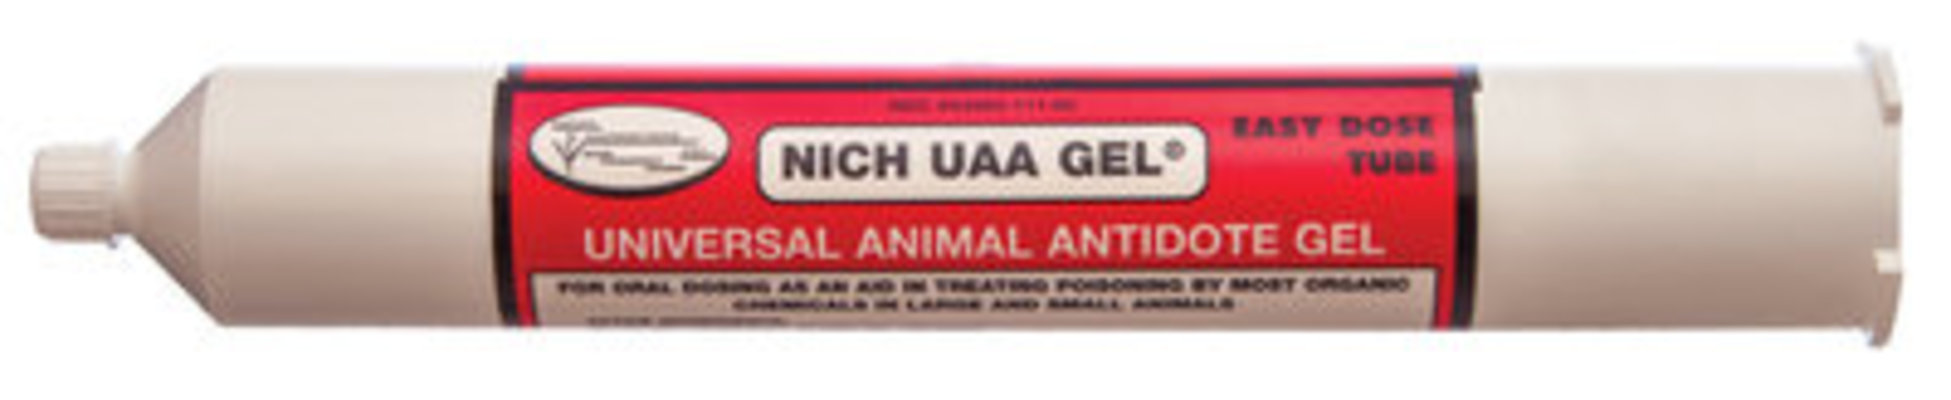 UAA Gel (Universal Antidote Gel)